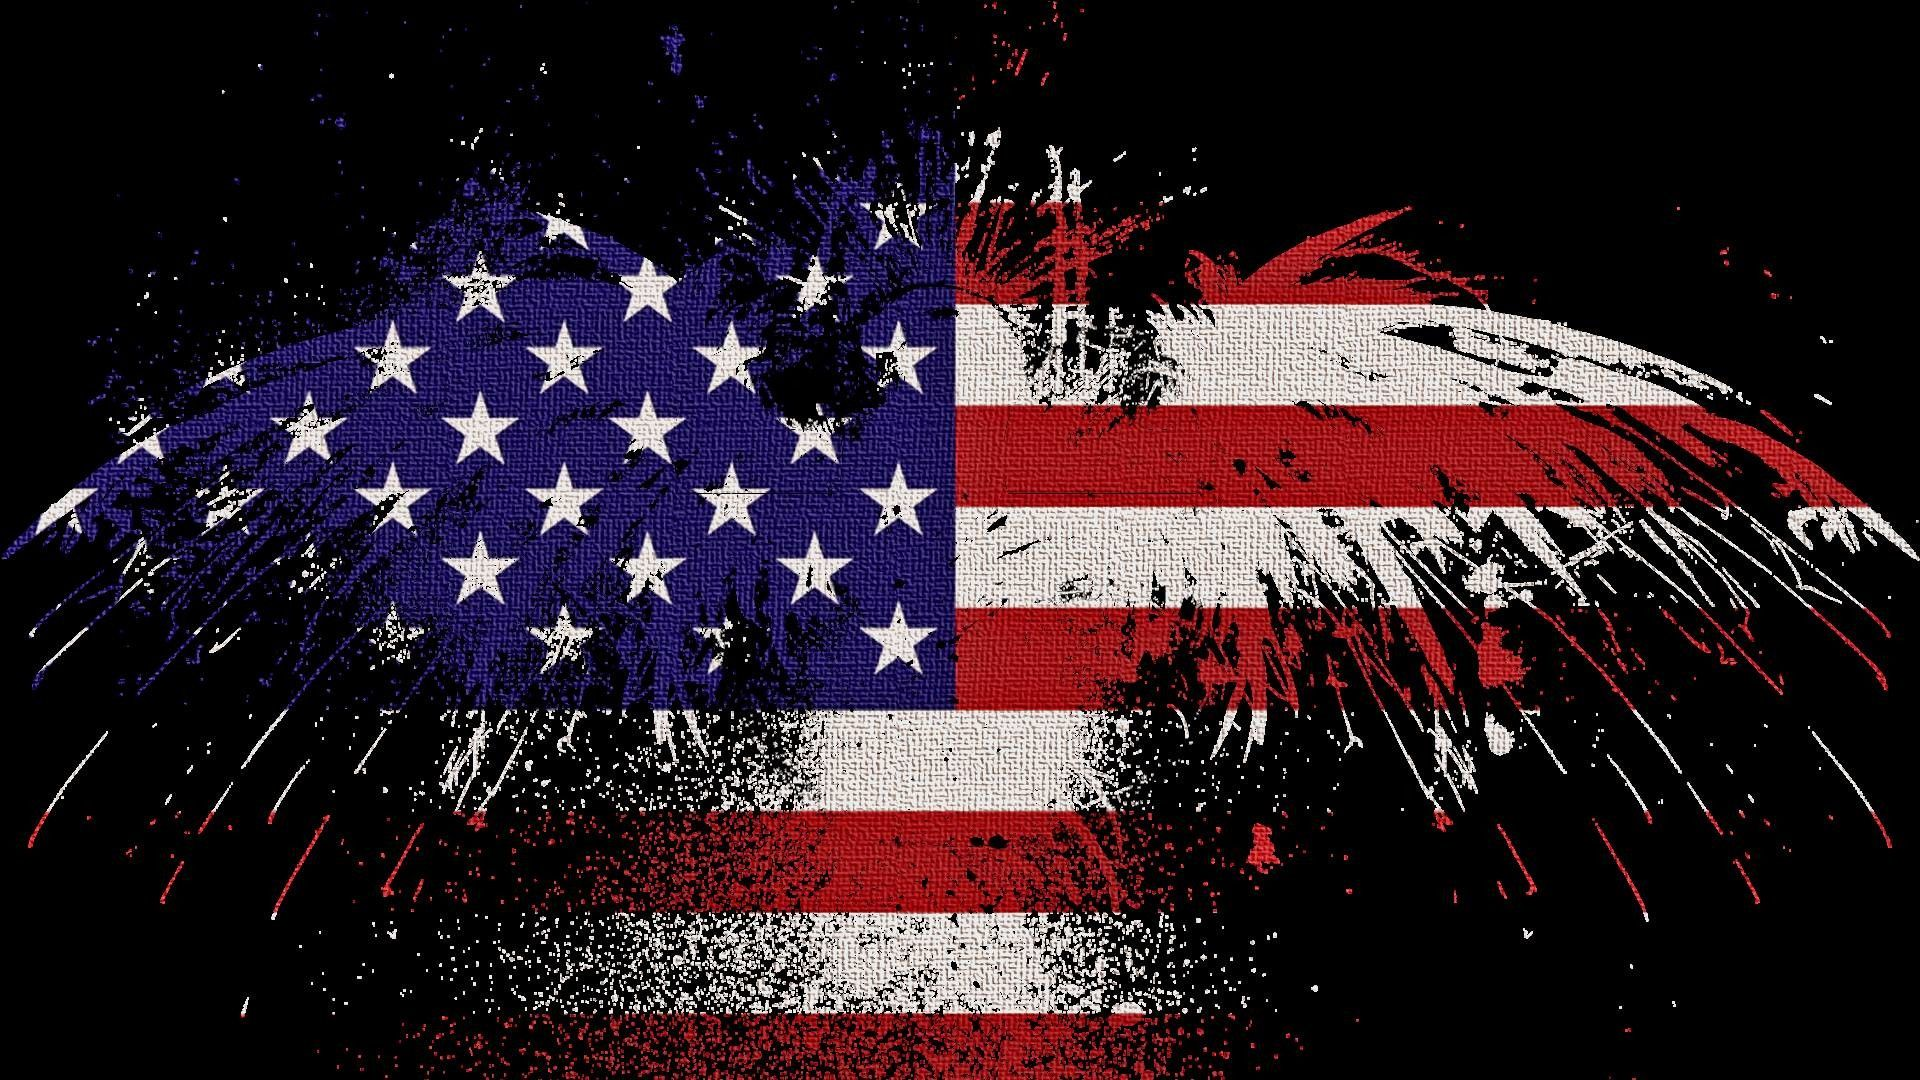 Patriotic Military Wallpapers Top Free Patriotic Military